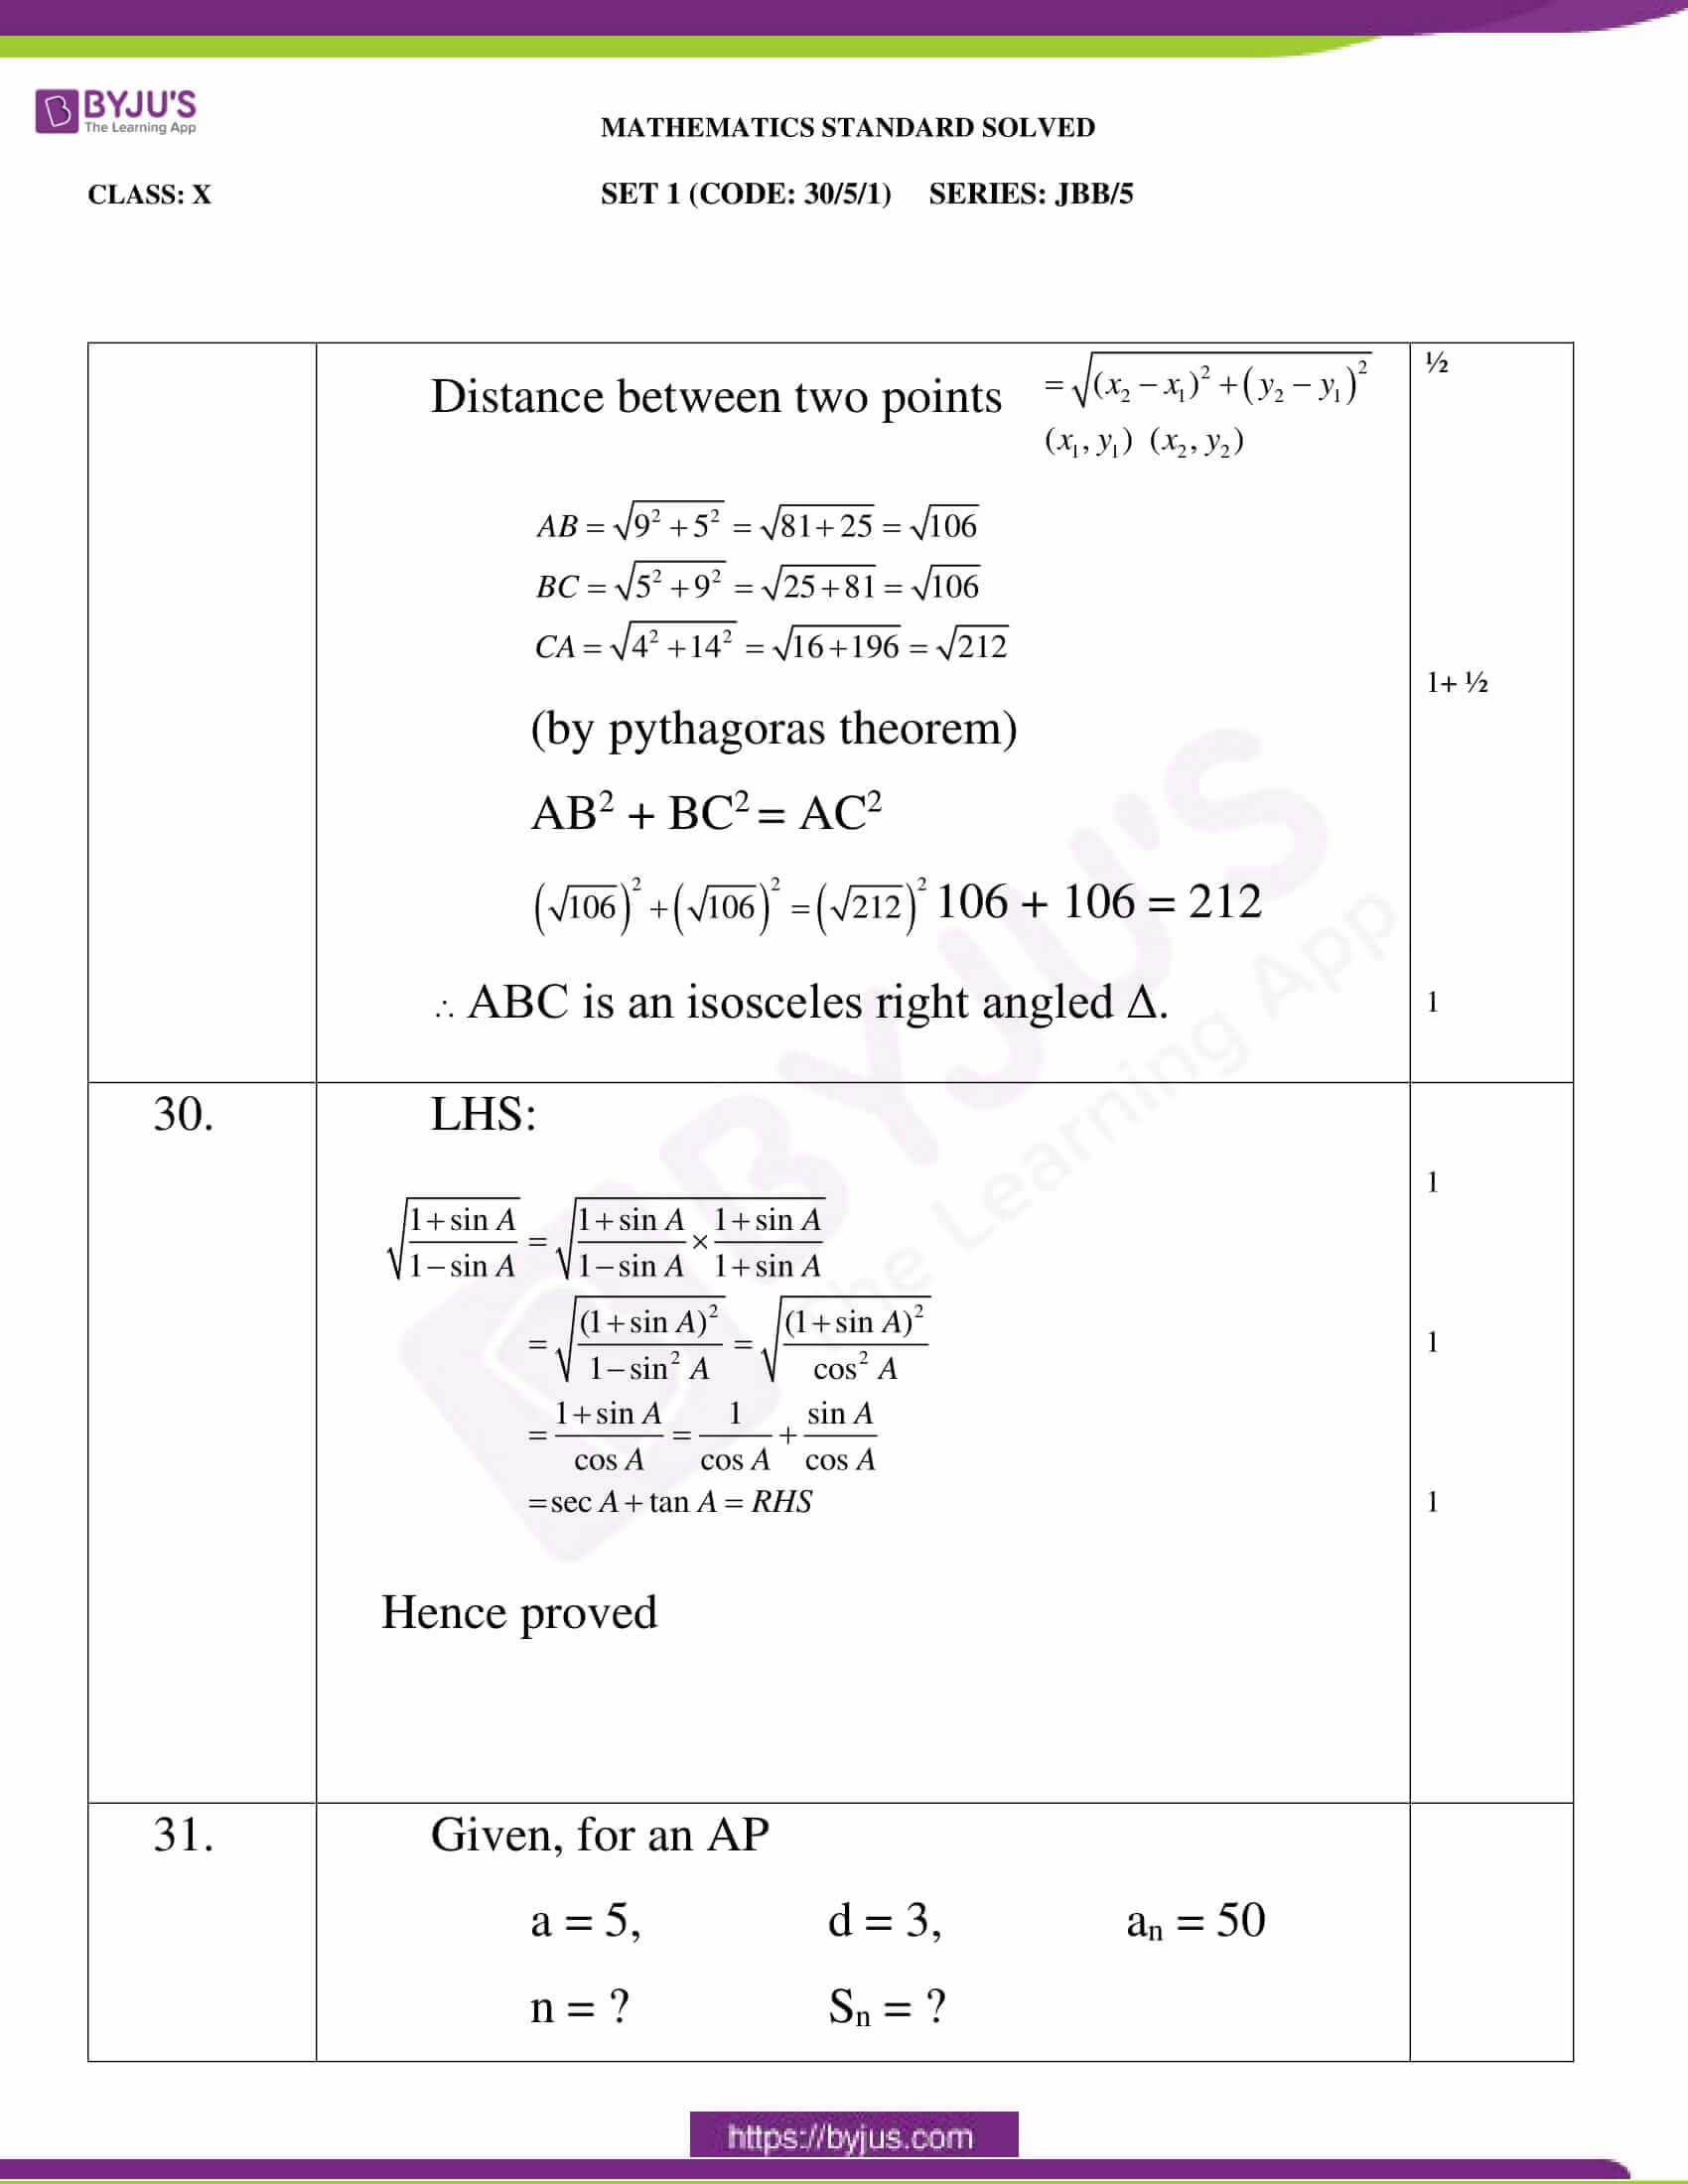 cbse class 10 maths standard question paper solution 2020 set 1 12